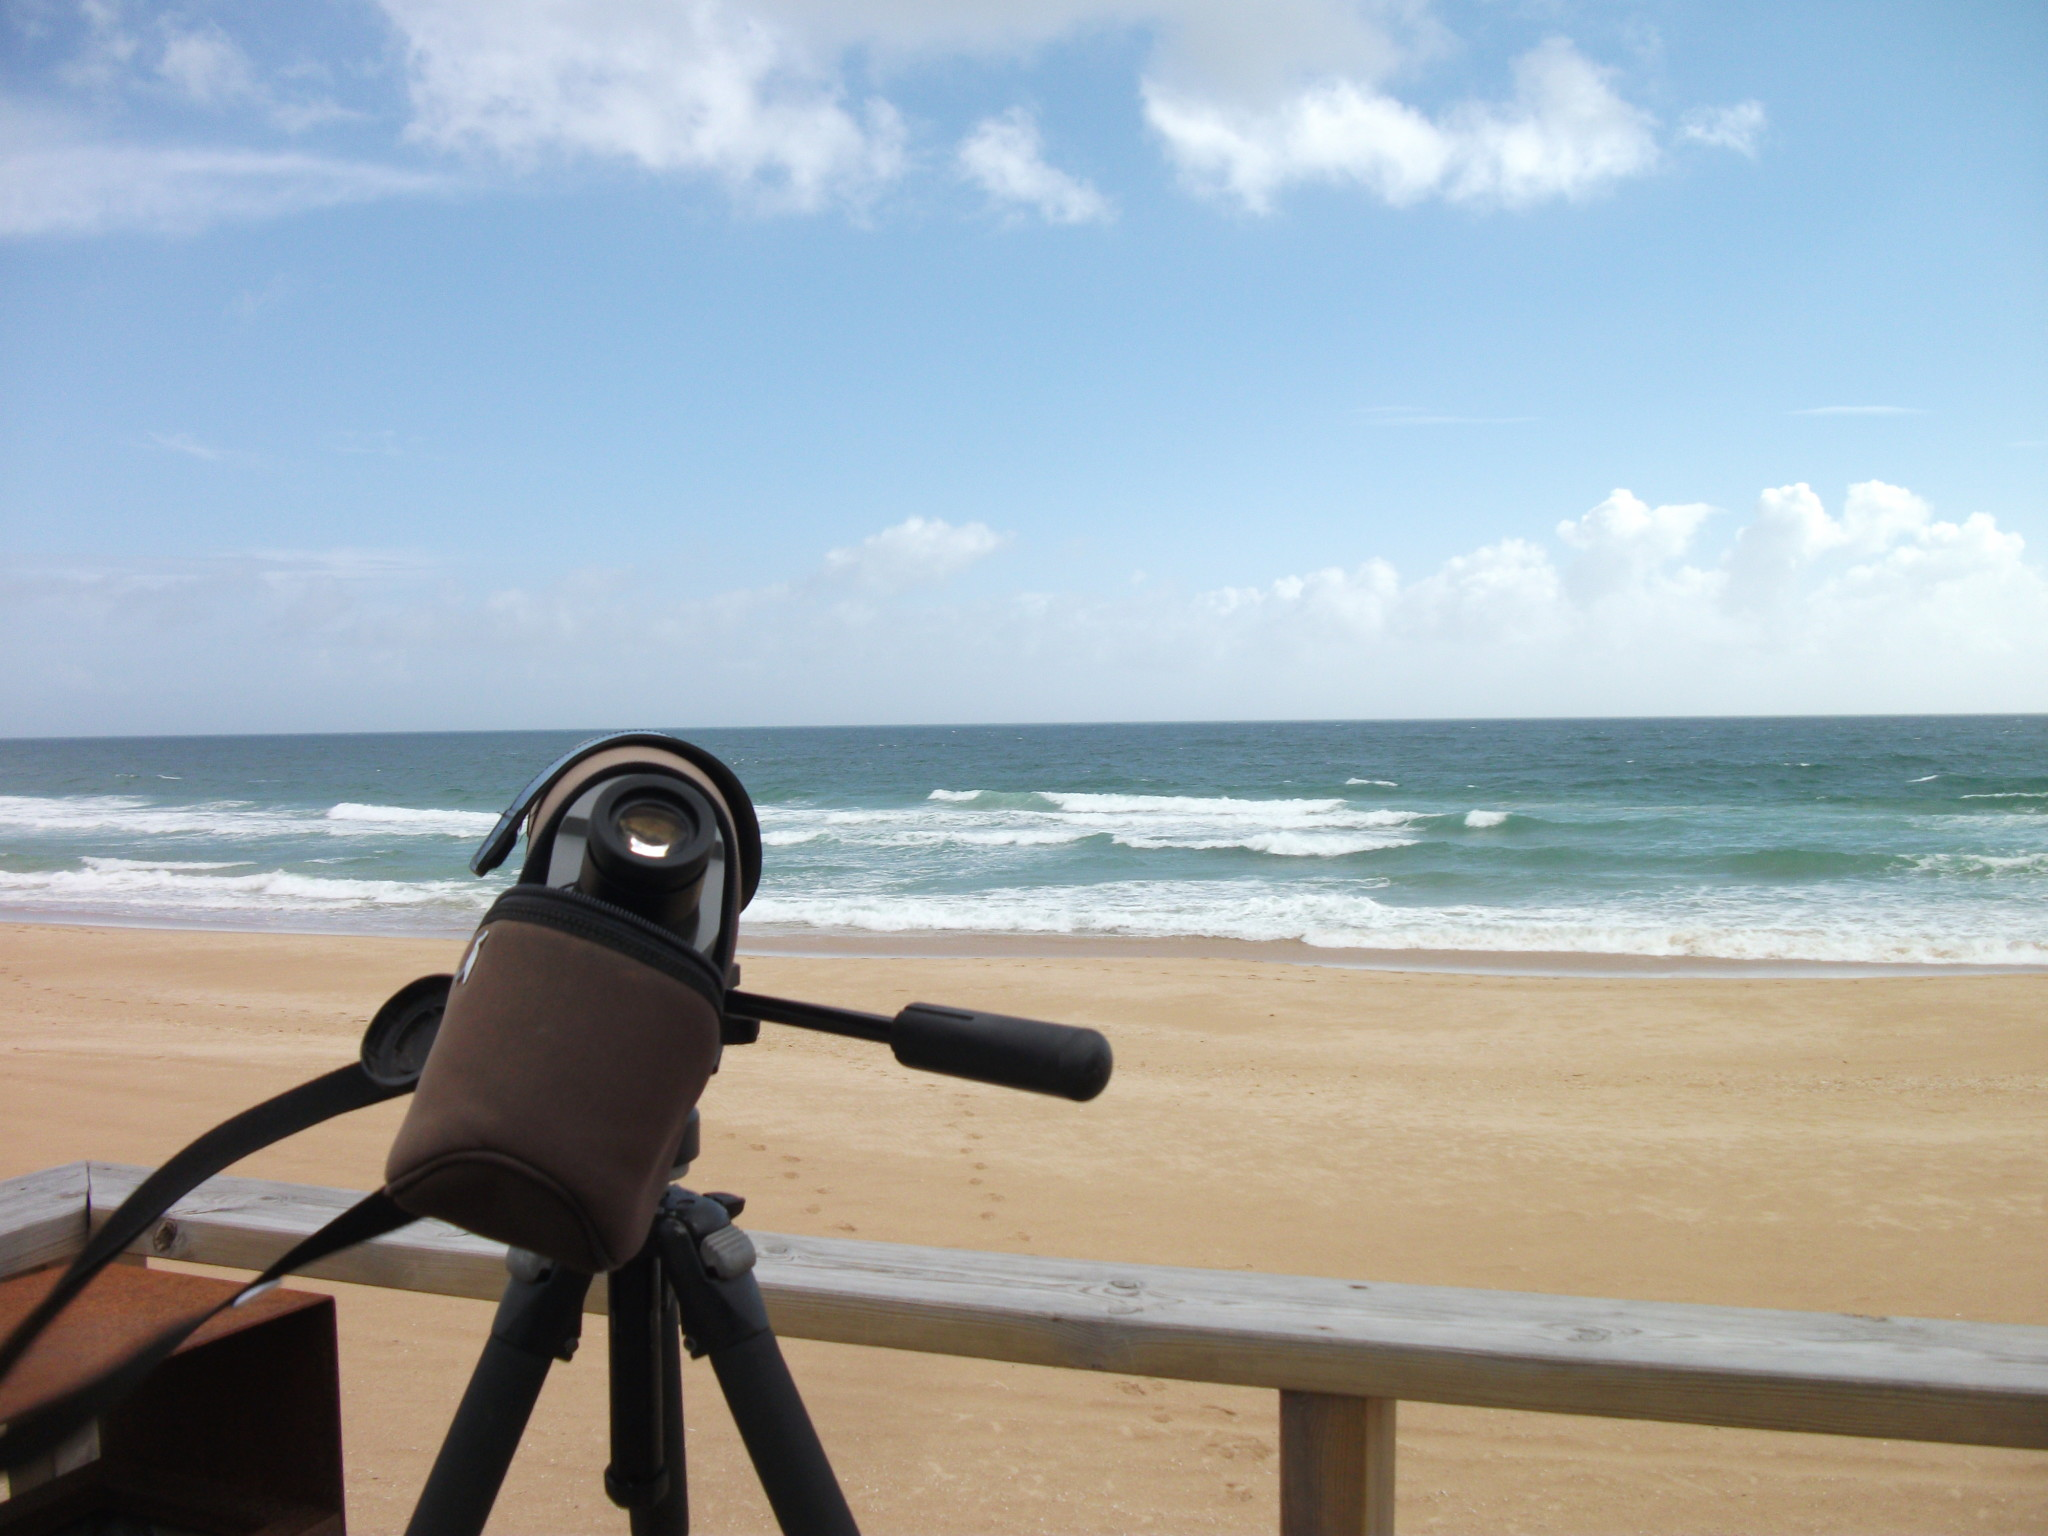 A telescope looking at the sea